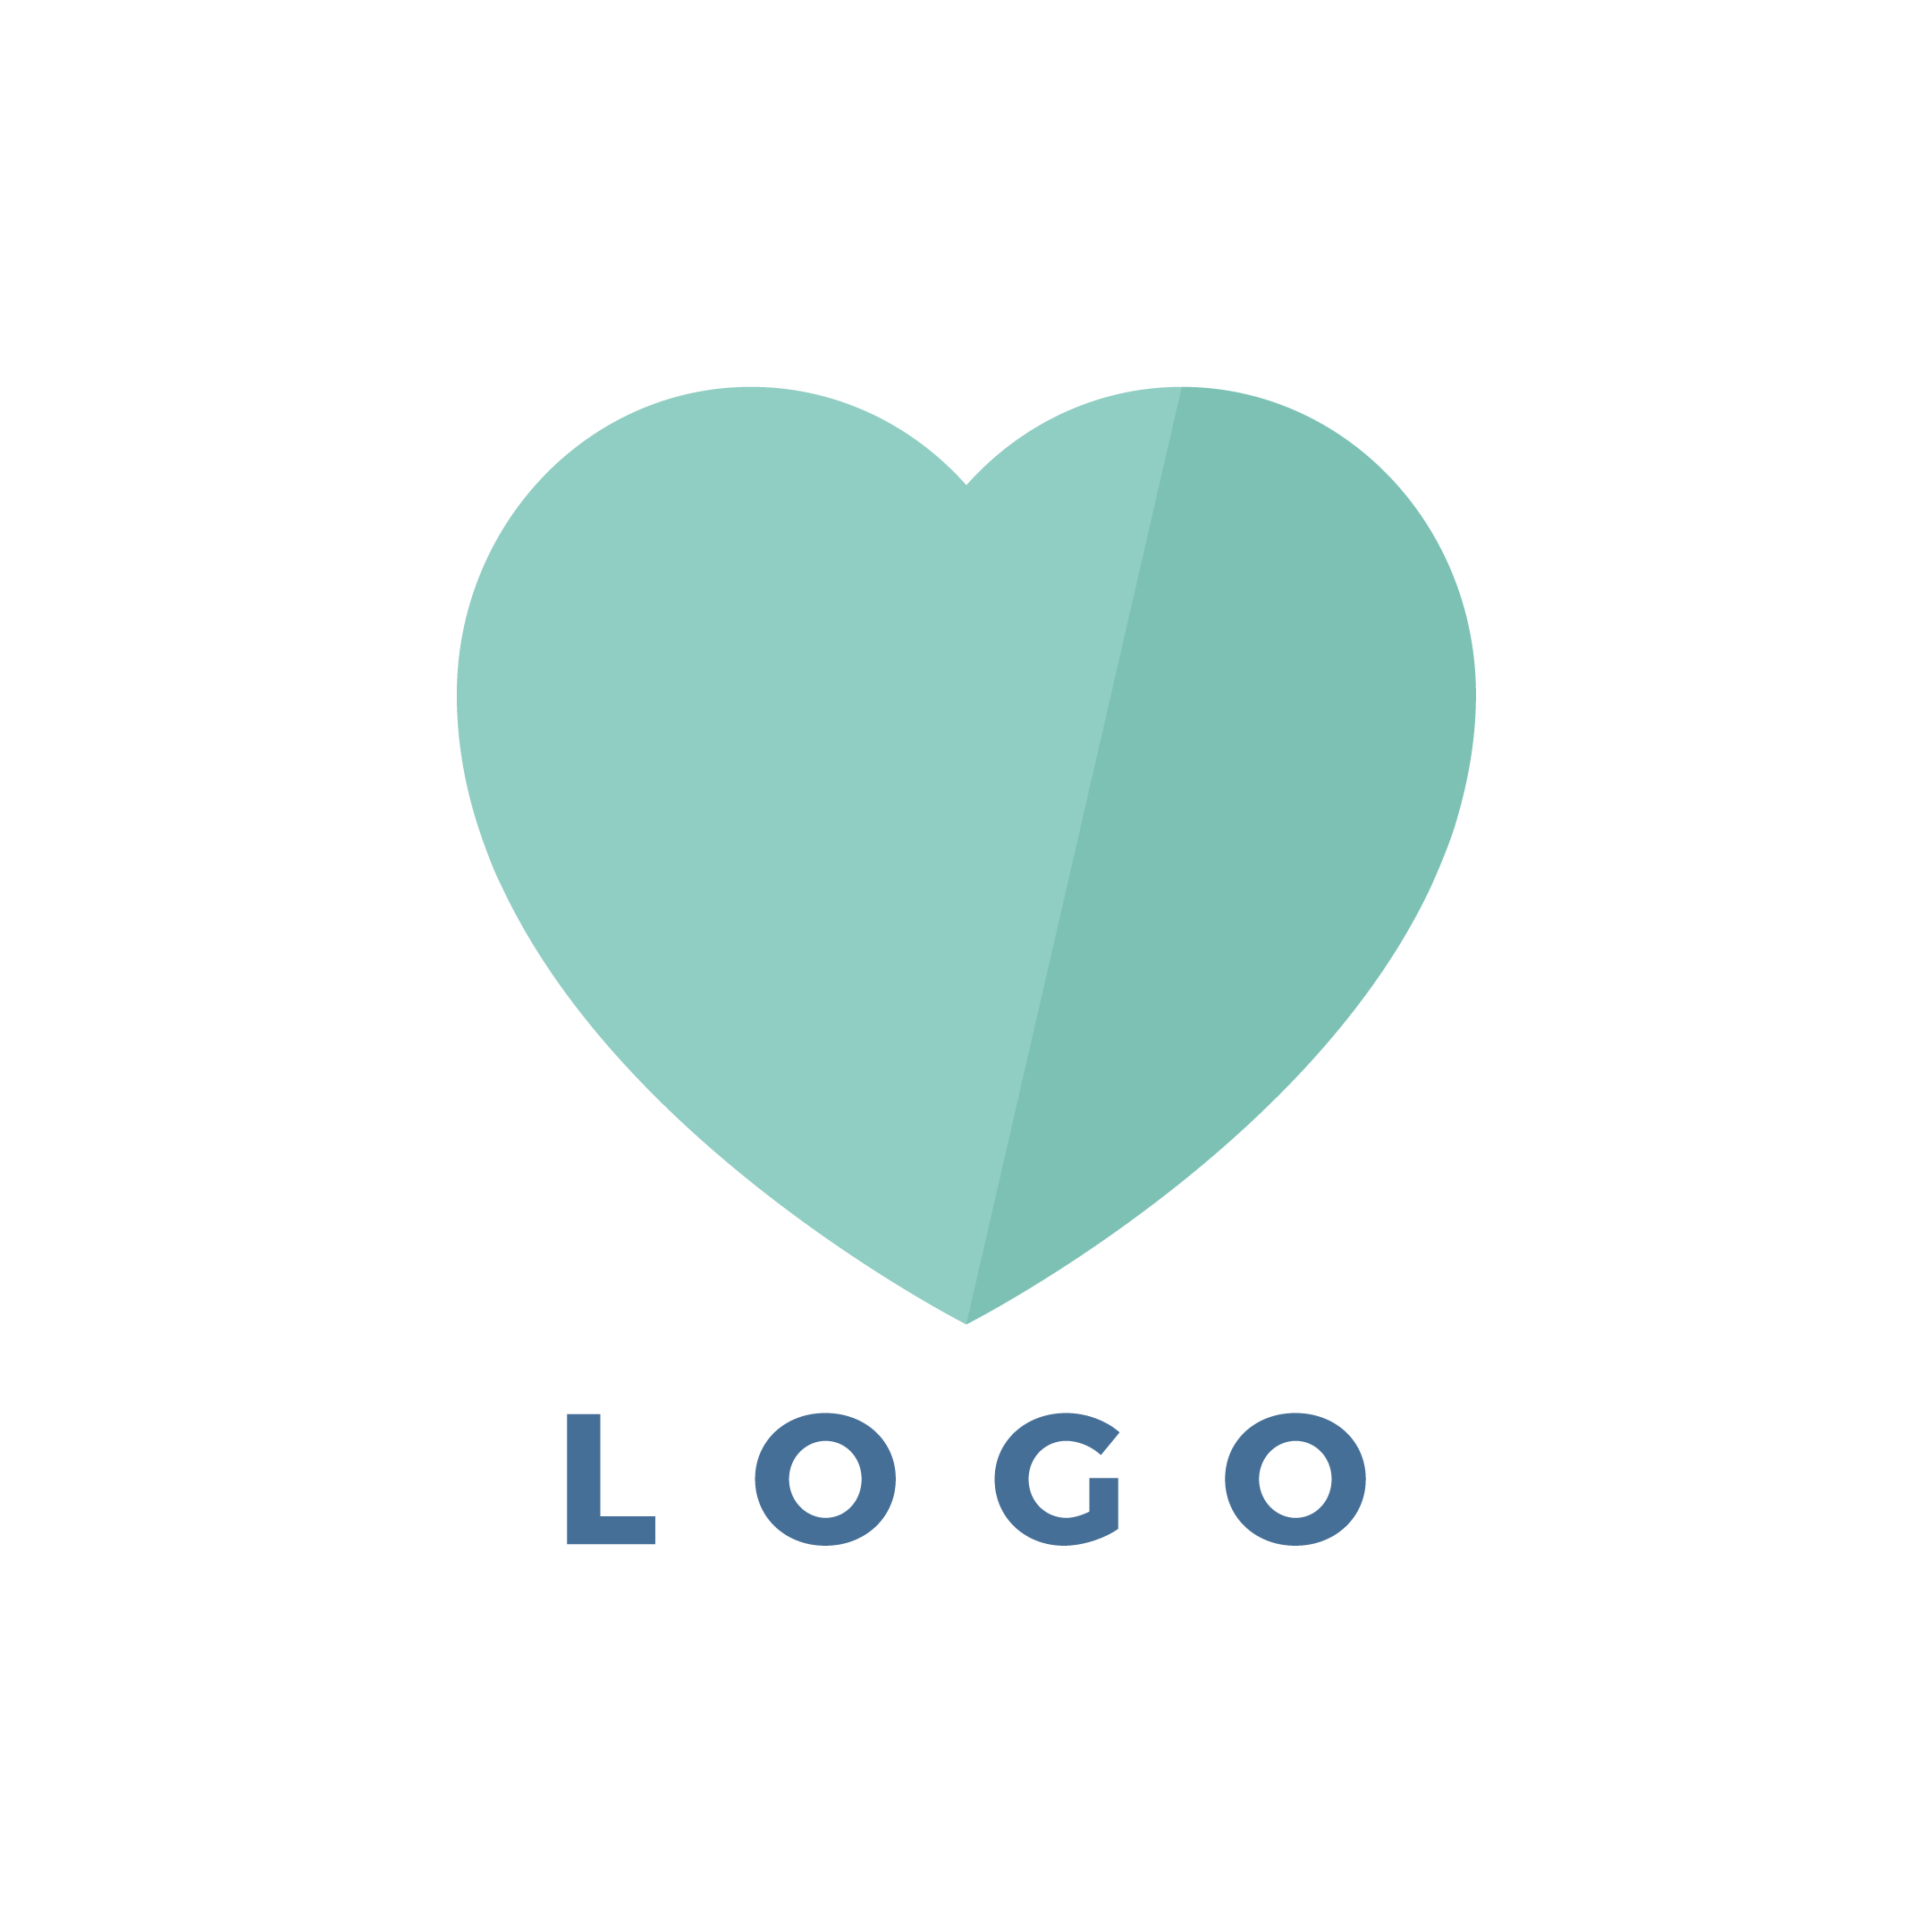 Vector illustration representing the logo design - mint heart with the logo written below it in flat design style